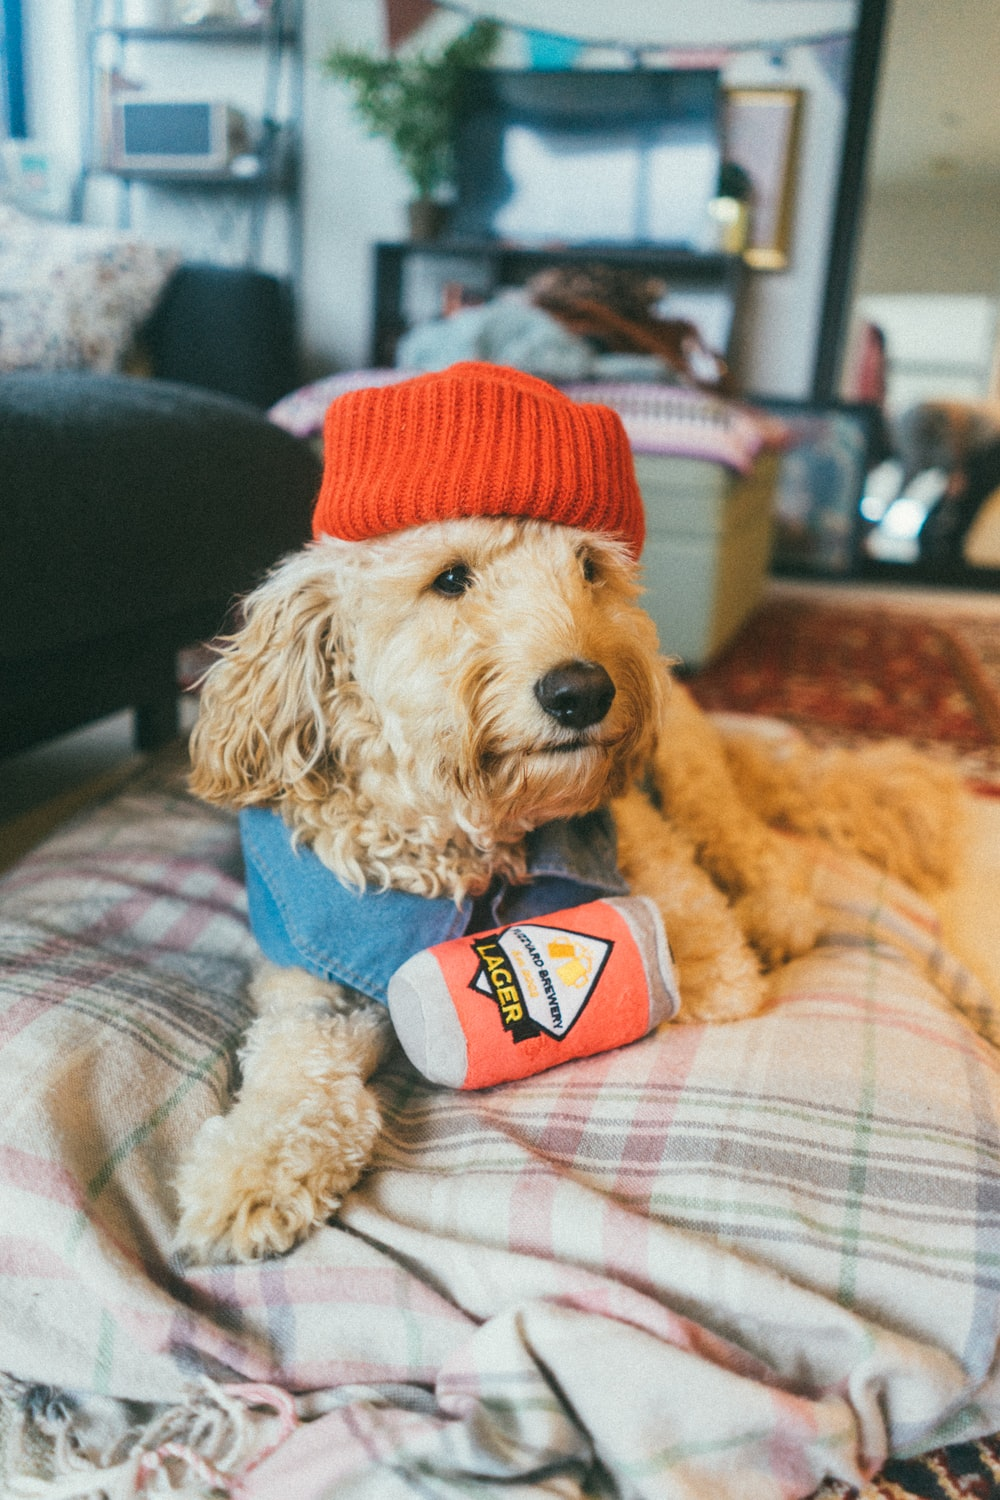 brown poodle wearing red knit hat